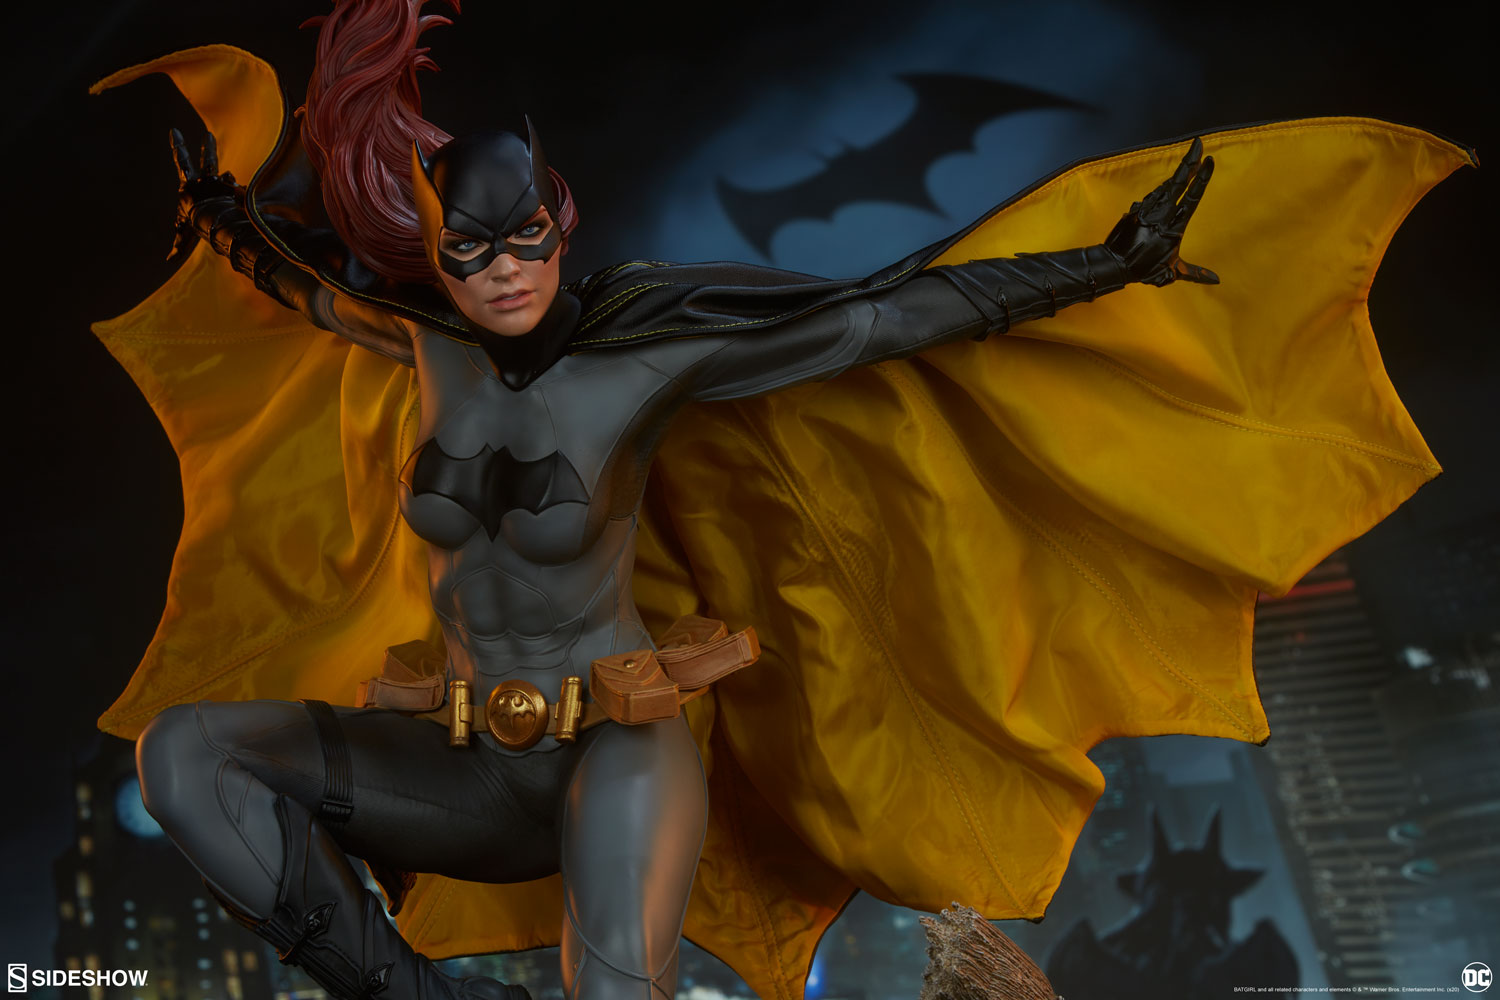 Barbara Gordon The Most Important Member Of The Bat Family Sideshow Collectibles